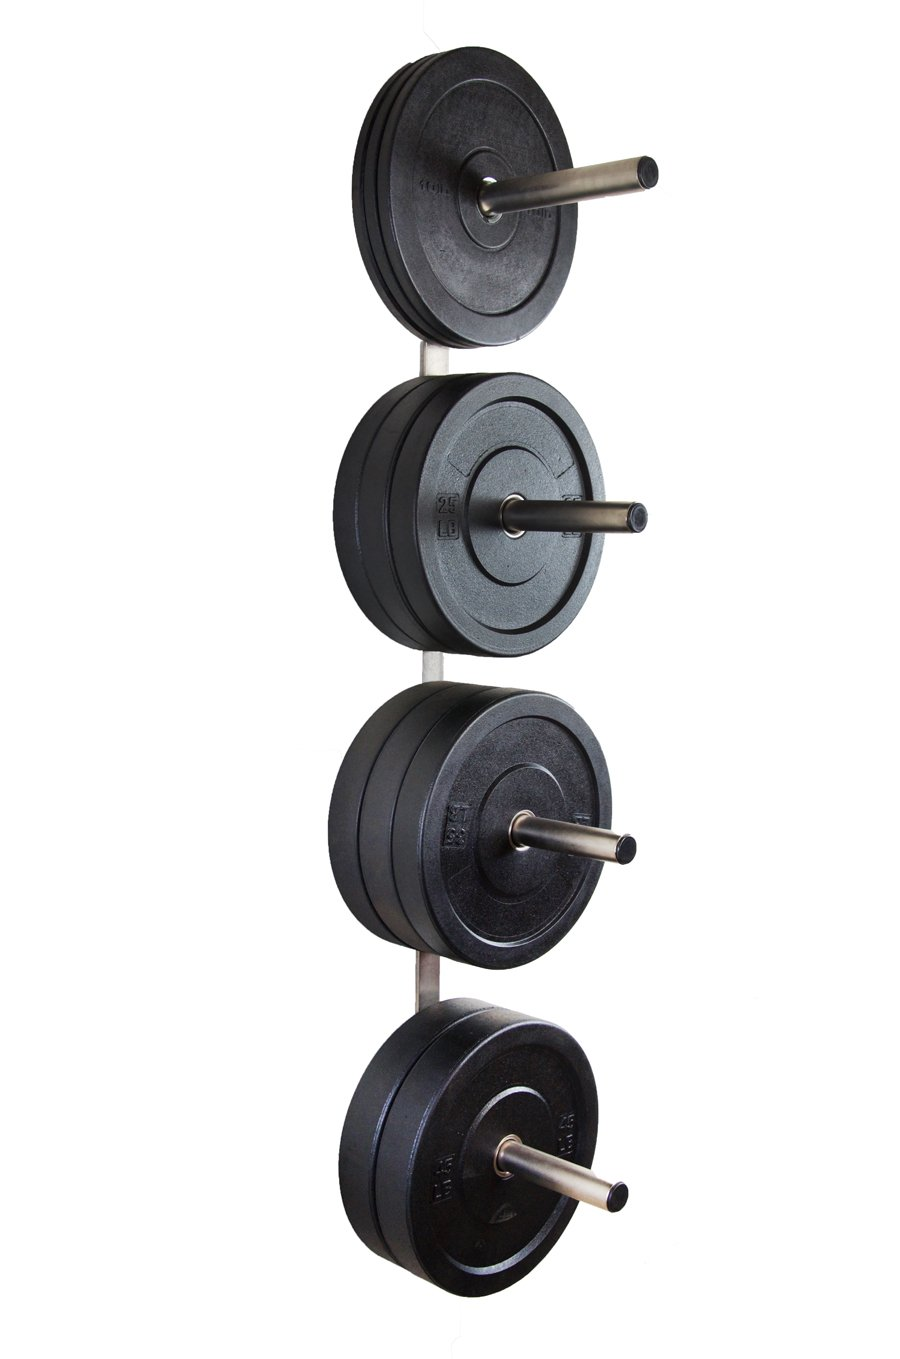 Wall Plate Storage Fitness Equipment Ireland Best For Buying Gym Equipment